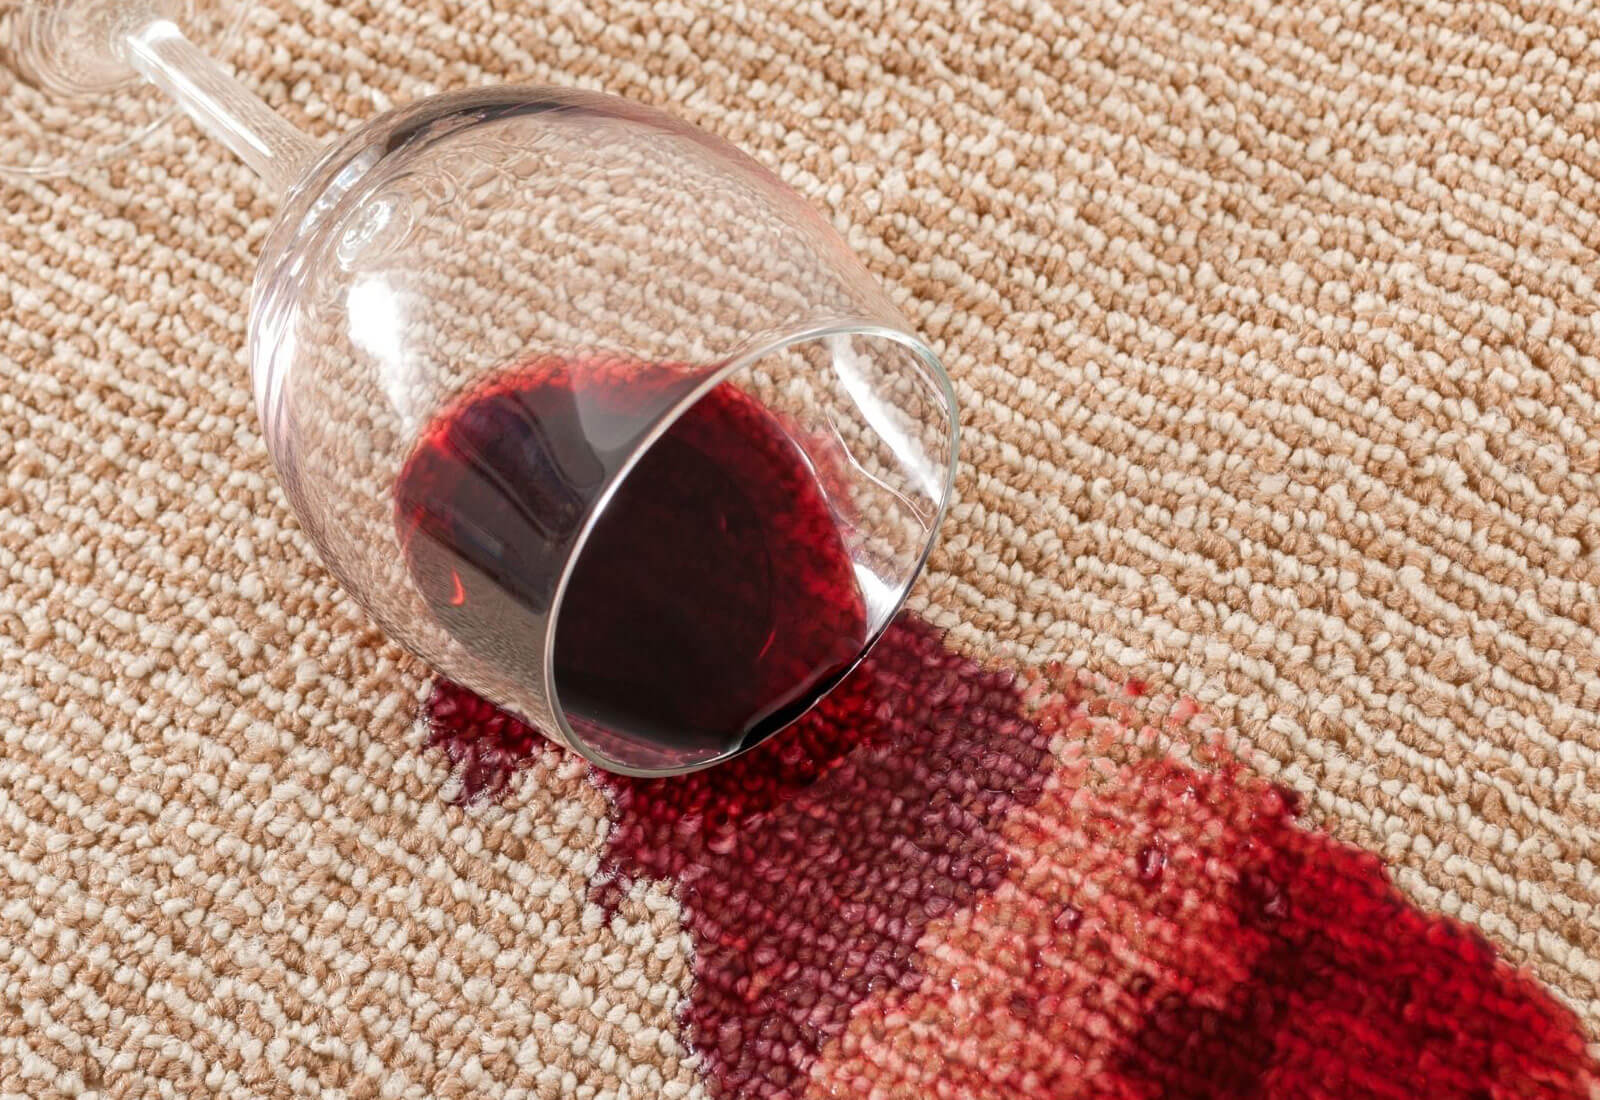 Red Wine spillage on the carpet